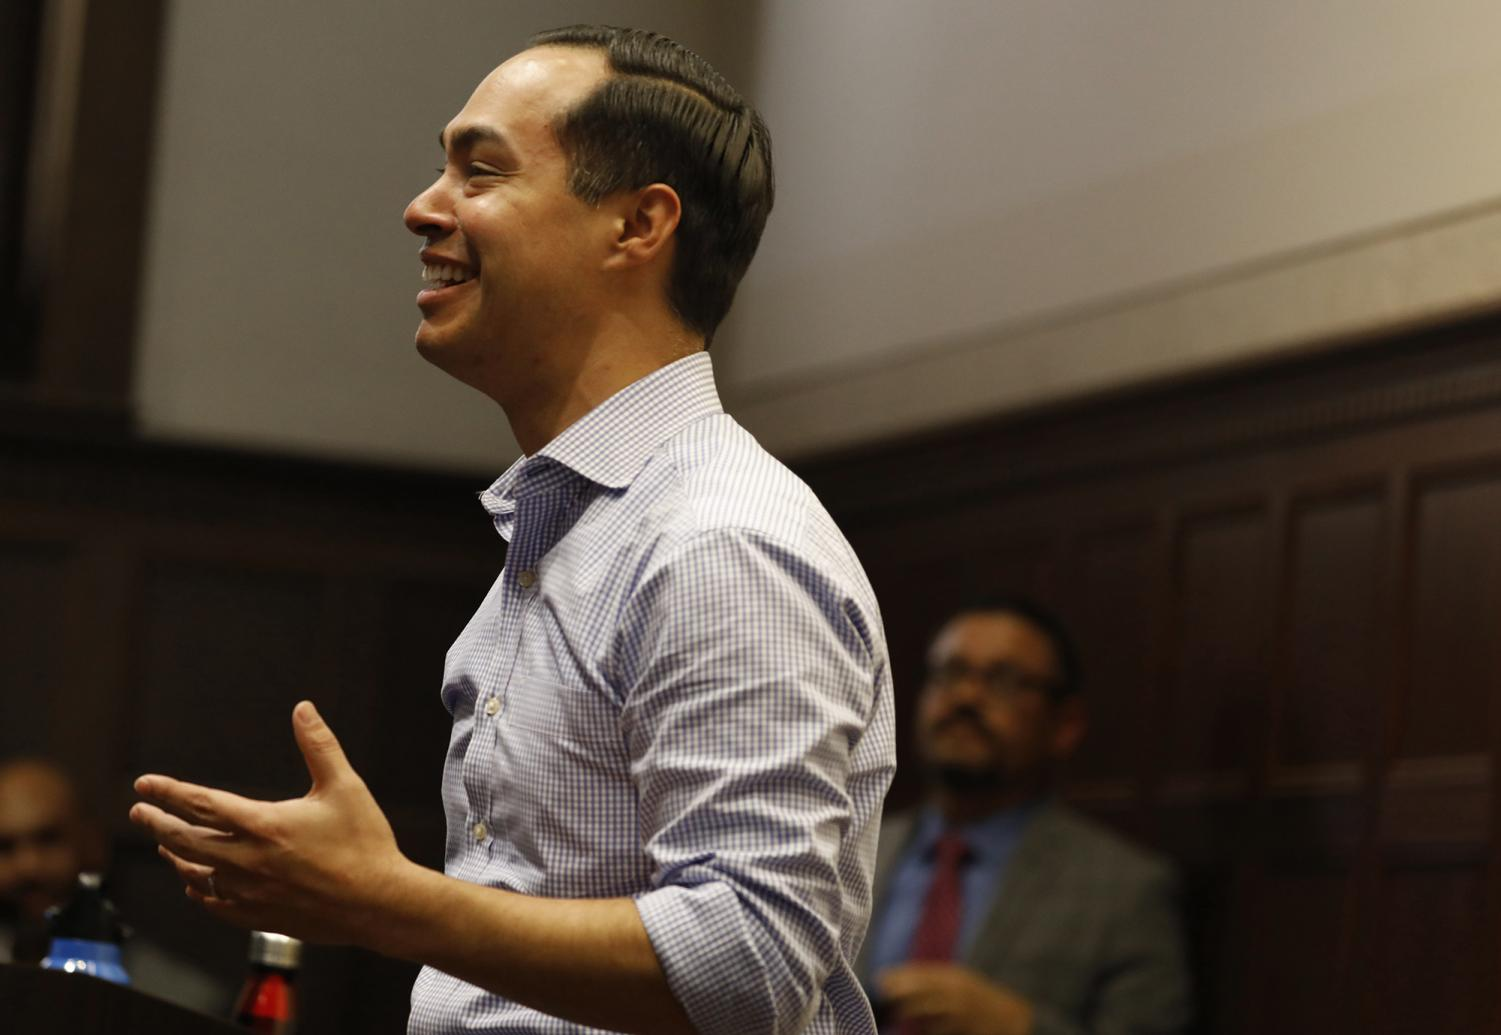 Democratic presidential candidate Julian Castro, left, speaks during a visit to a Chicano Studies class in Moore Hall auditorium at UCLA in Los Angeles on March 4, 2019. (Francine Orr/Los Angeles Times/TNS)